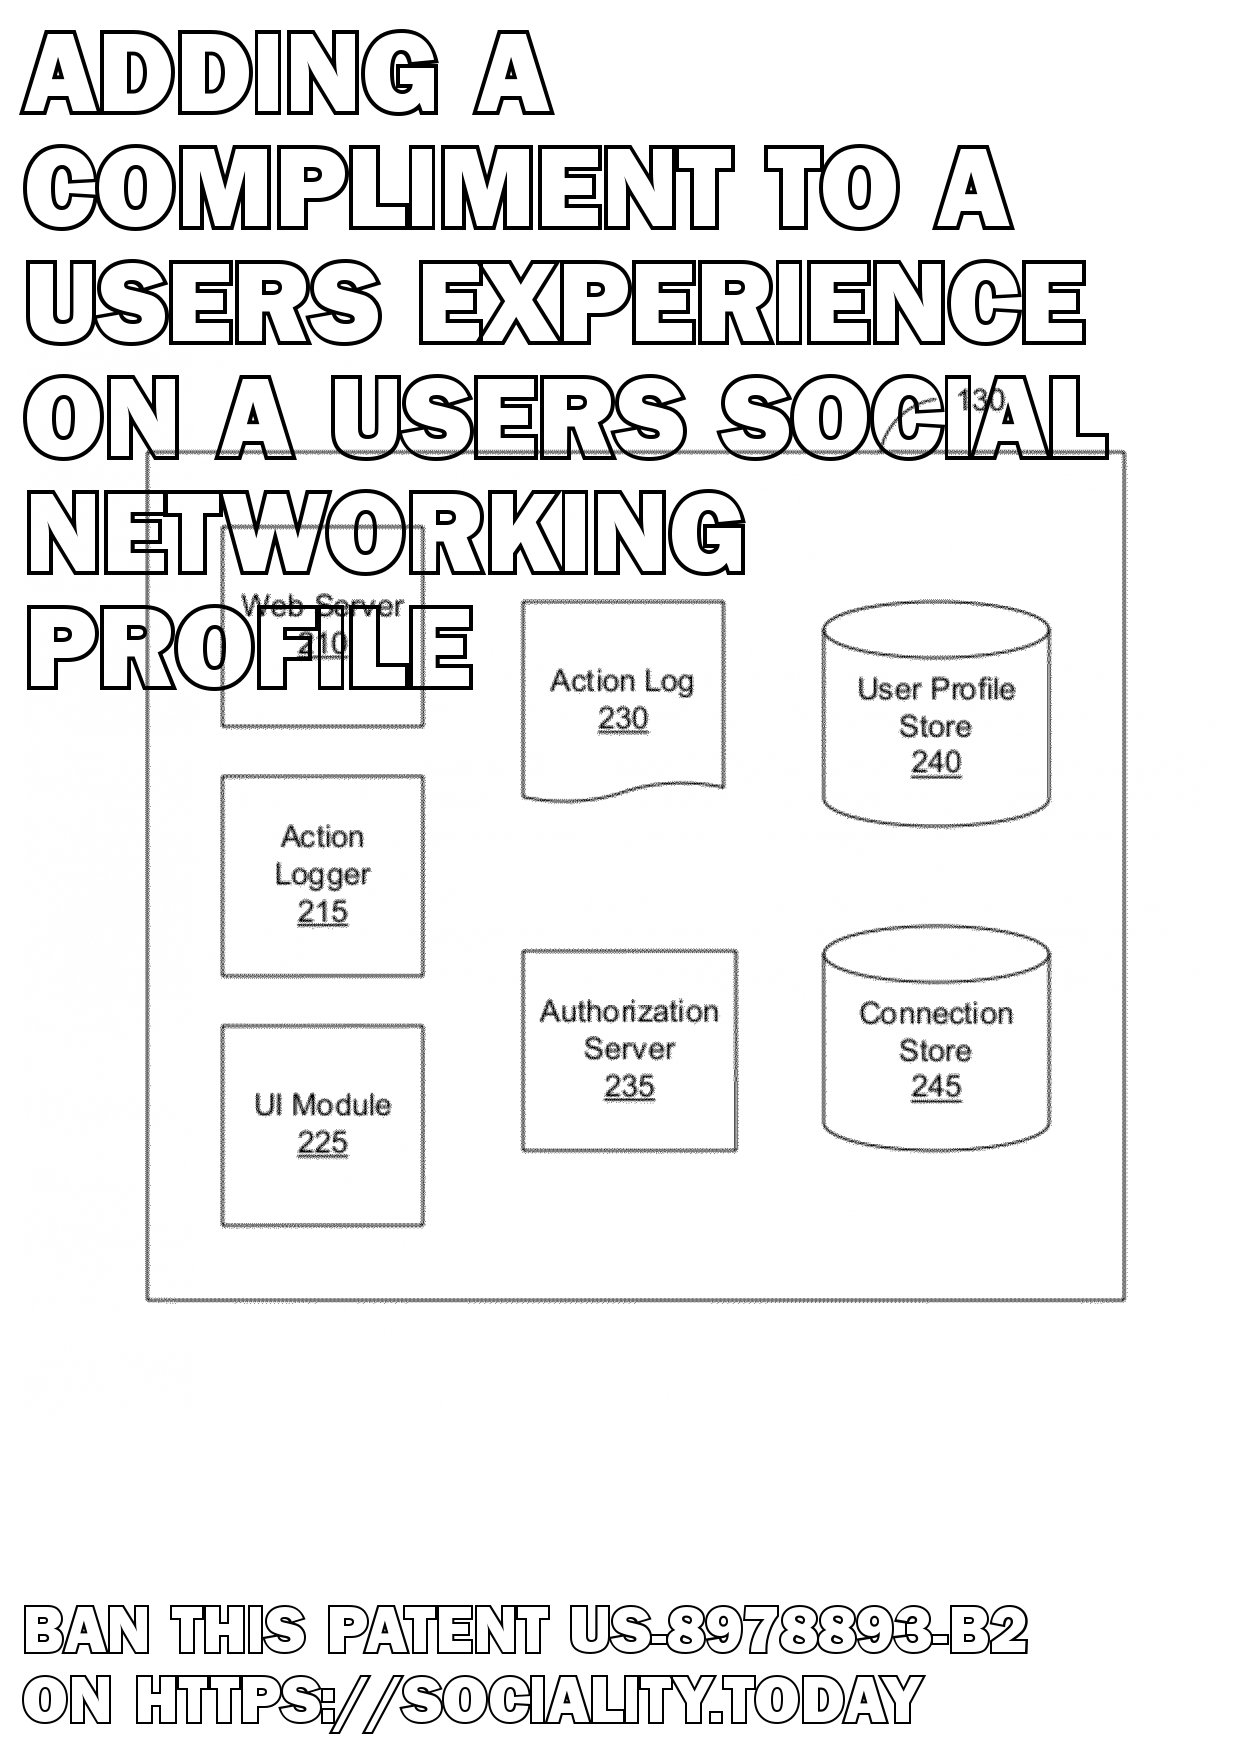 Adding a compliment to a users experience on a users social networking profile  - US-8978893-B2